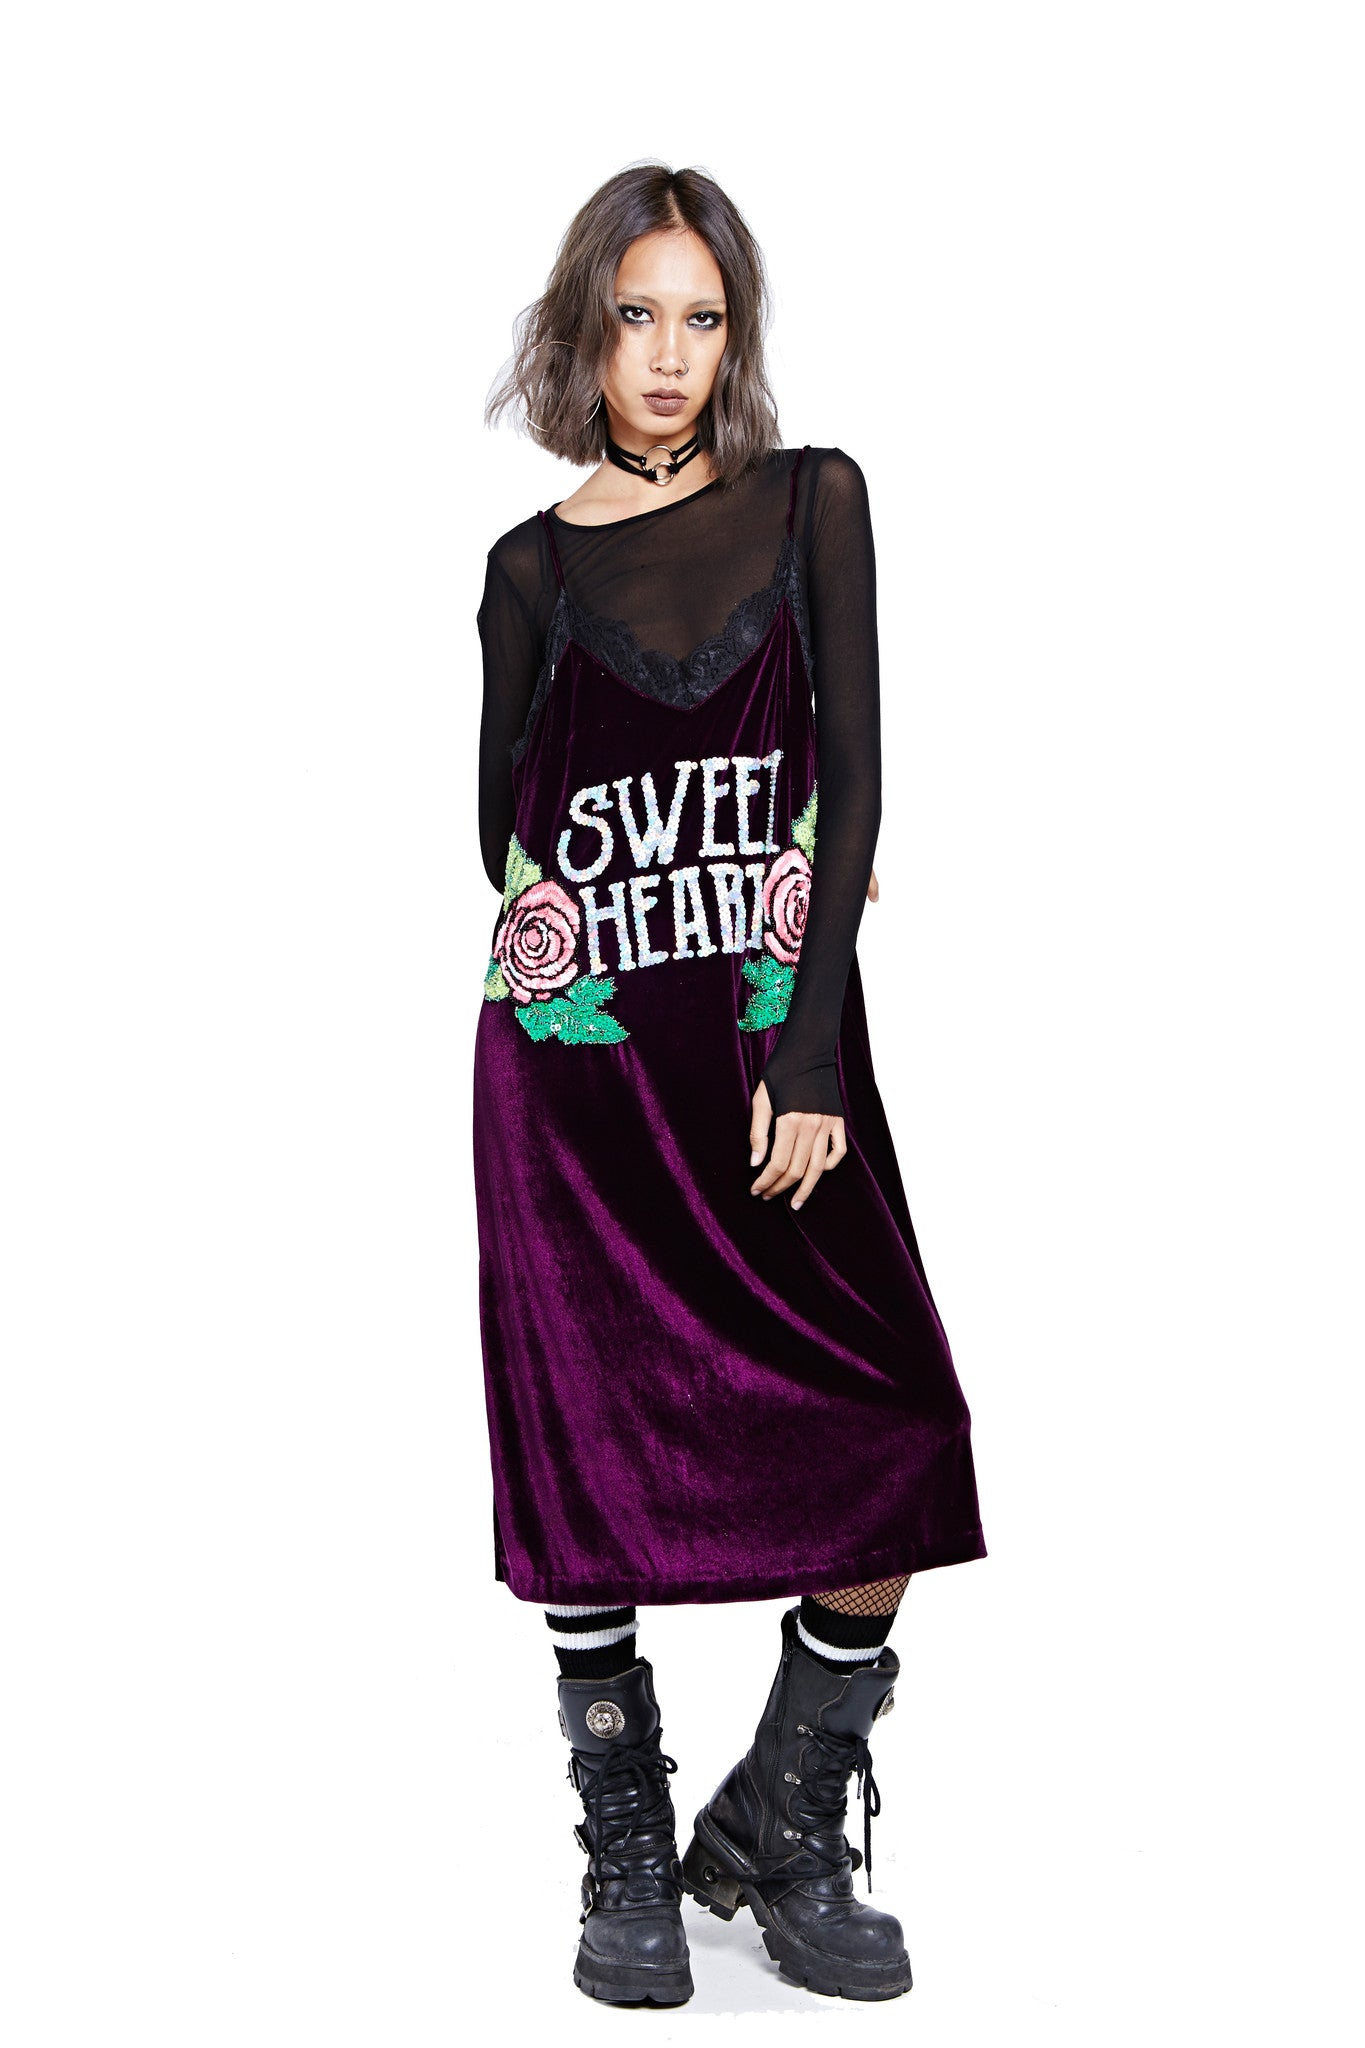 Sweet Heart Dress - Purple